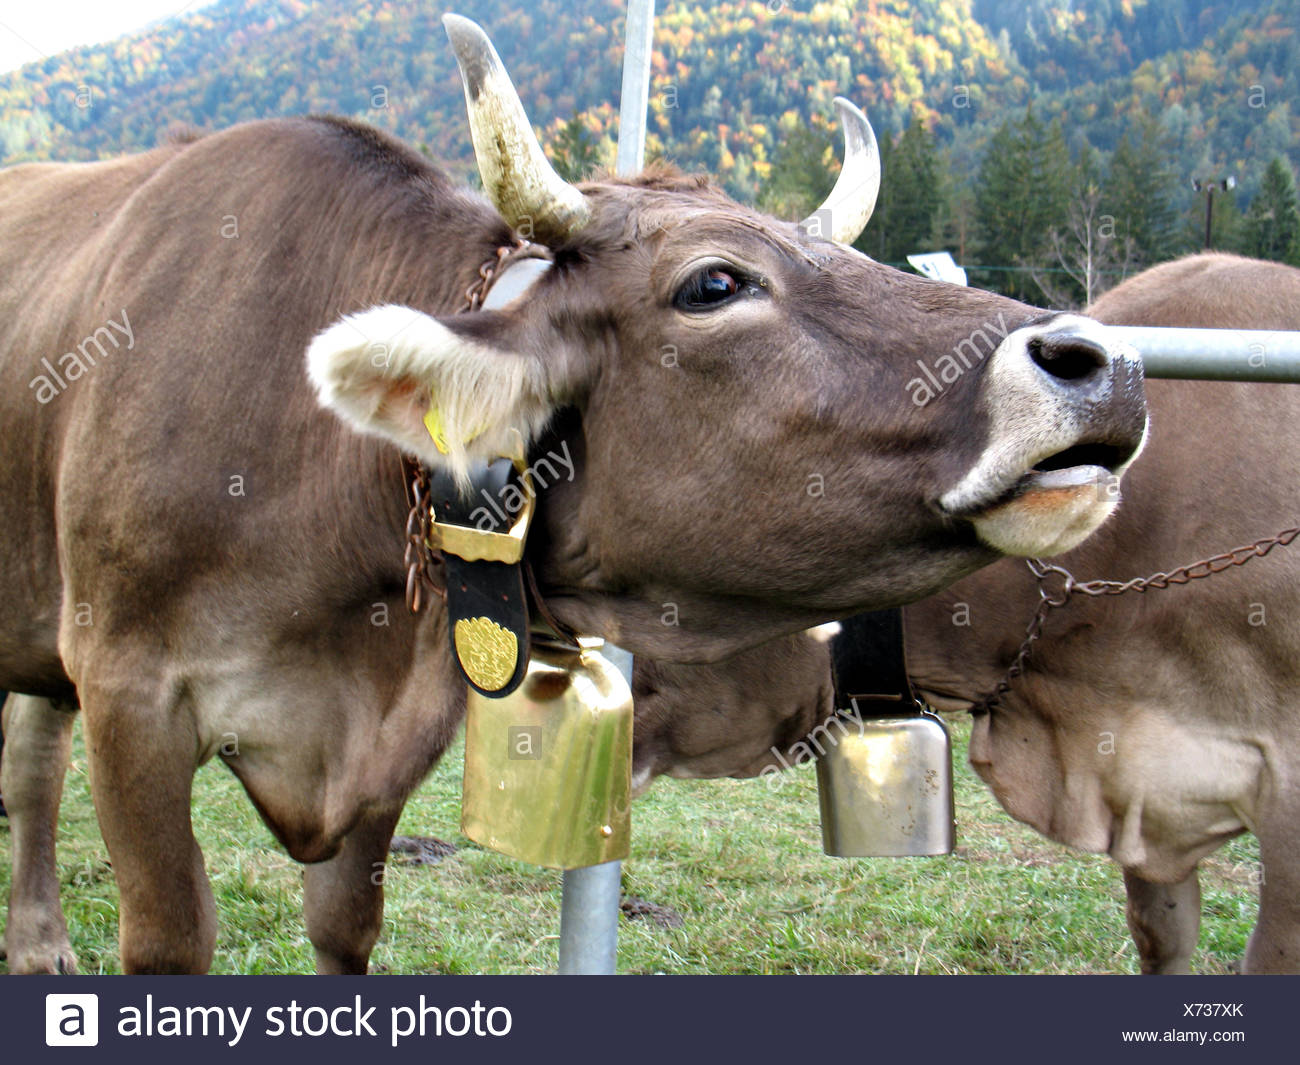 Animal Cow Farm Muzzle Cattle Pasture Roar Moo Animal Mammal Brown